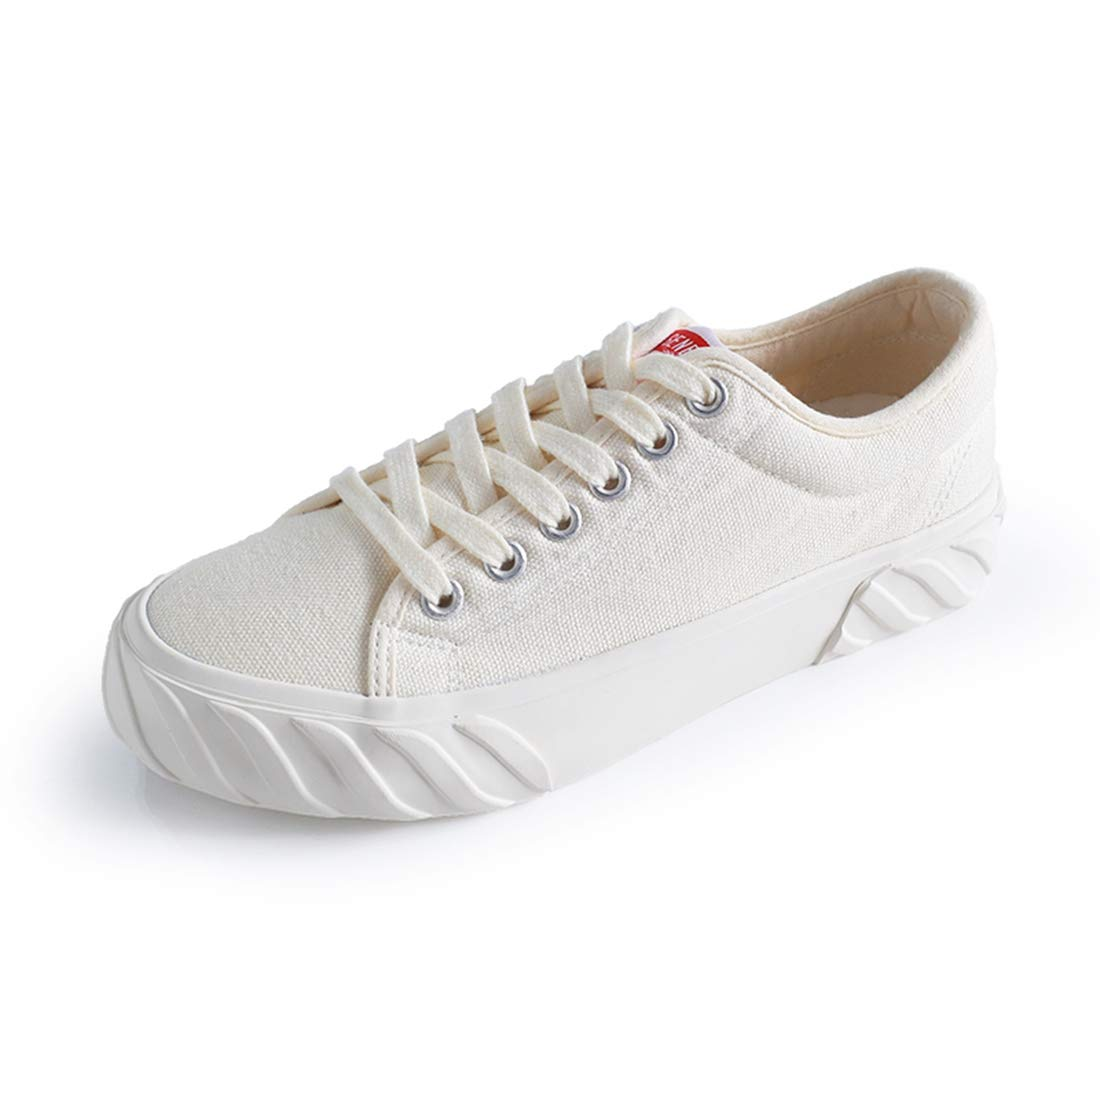 0673 Cool Soft Sneakers PU Injection Shoes Footwear for 25-27cm Feet